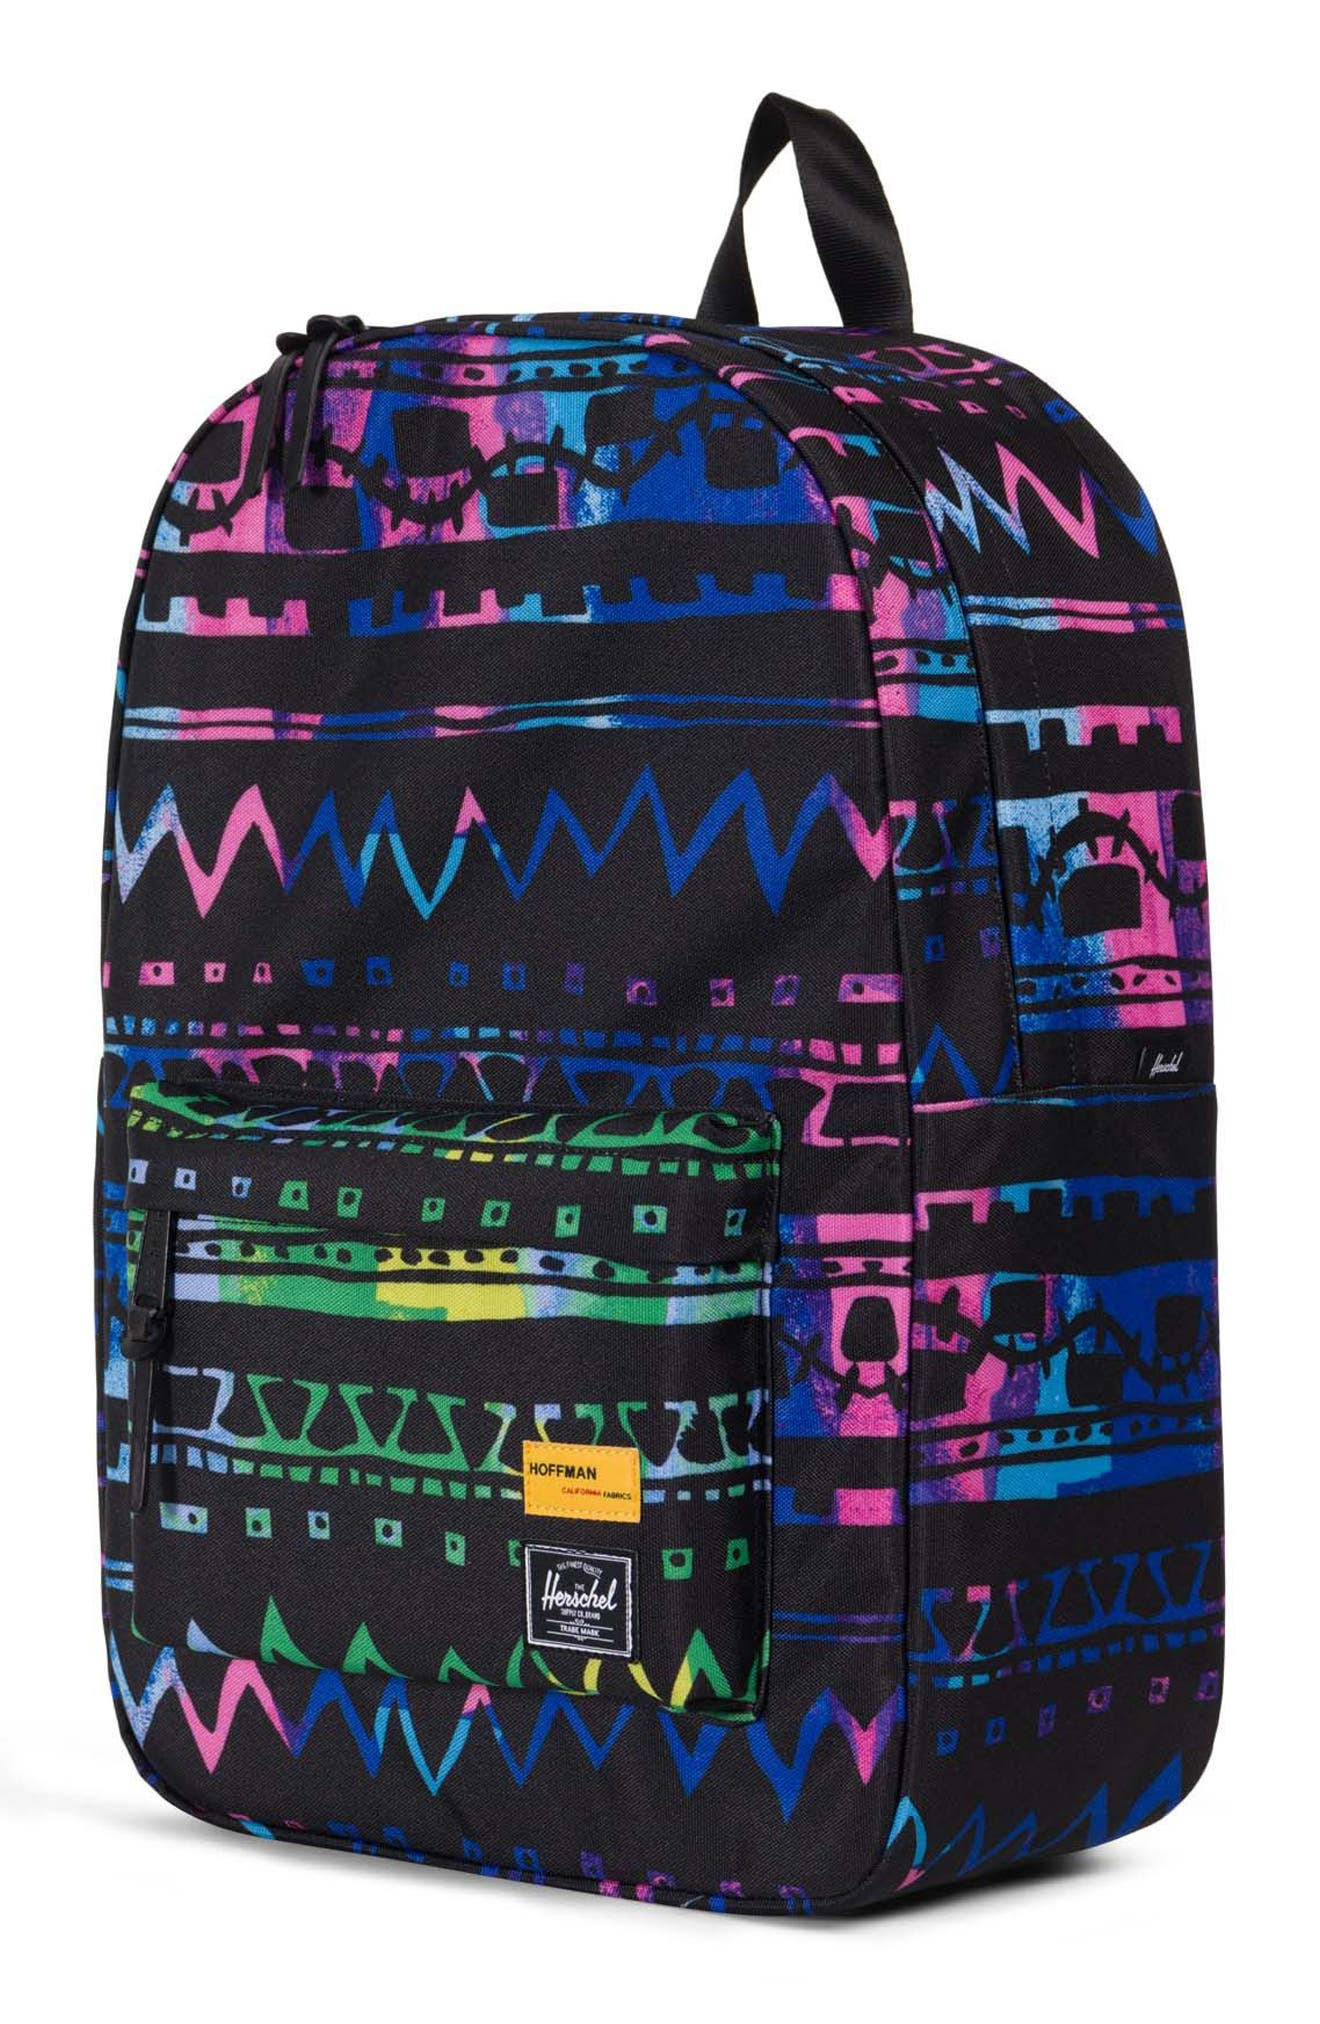 Hoffman Winlaw Backpack,                             Alternate thumbnail 4, color,